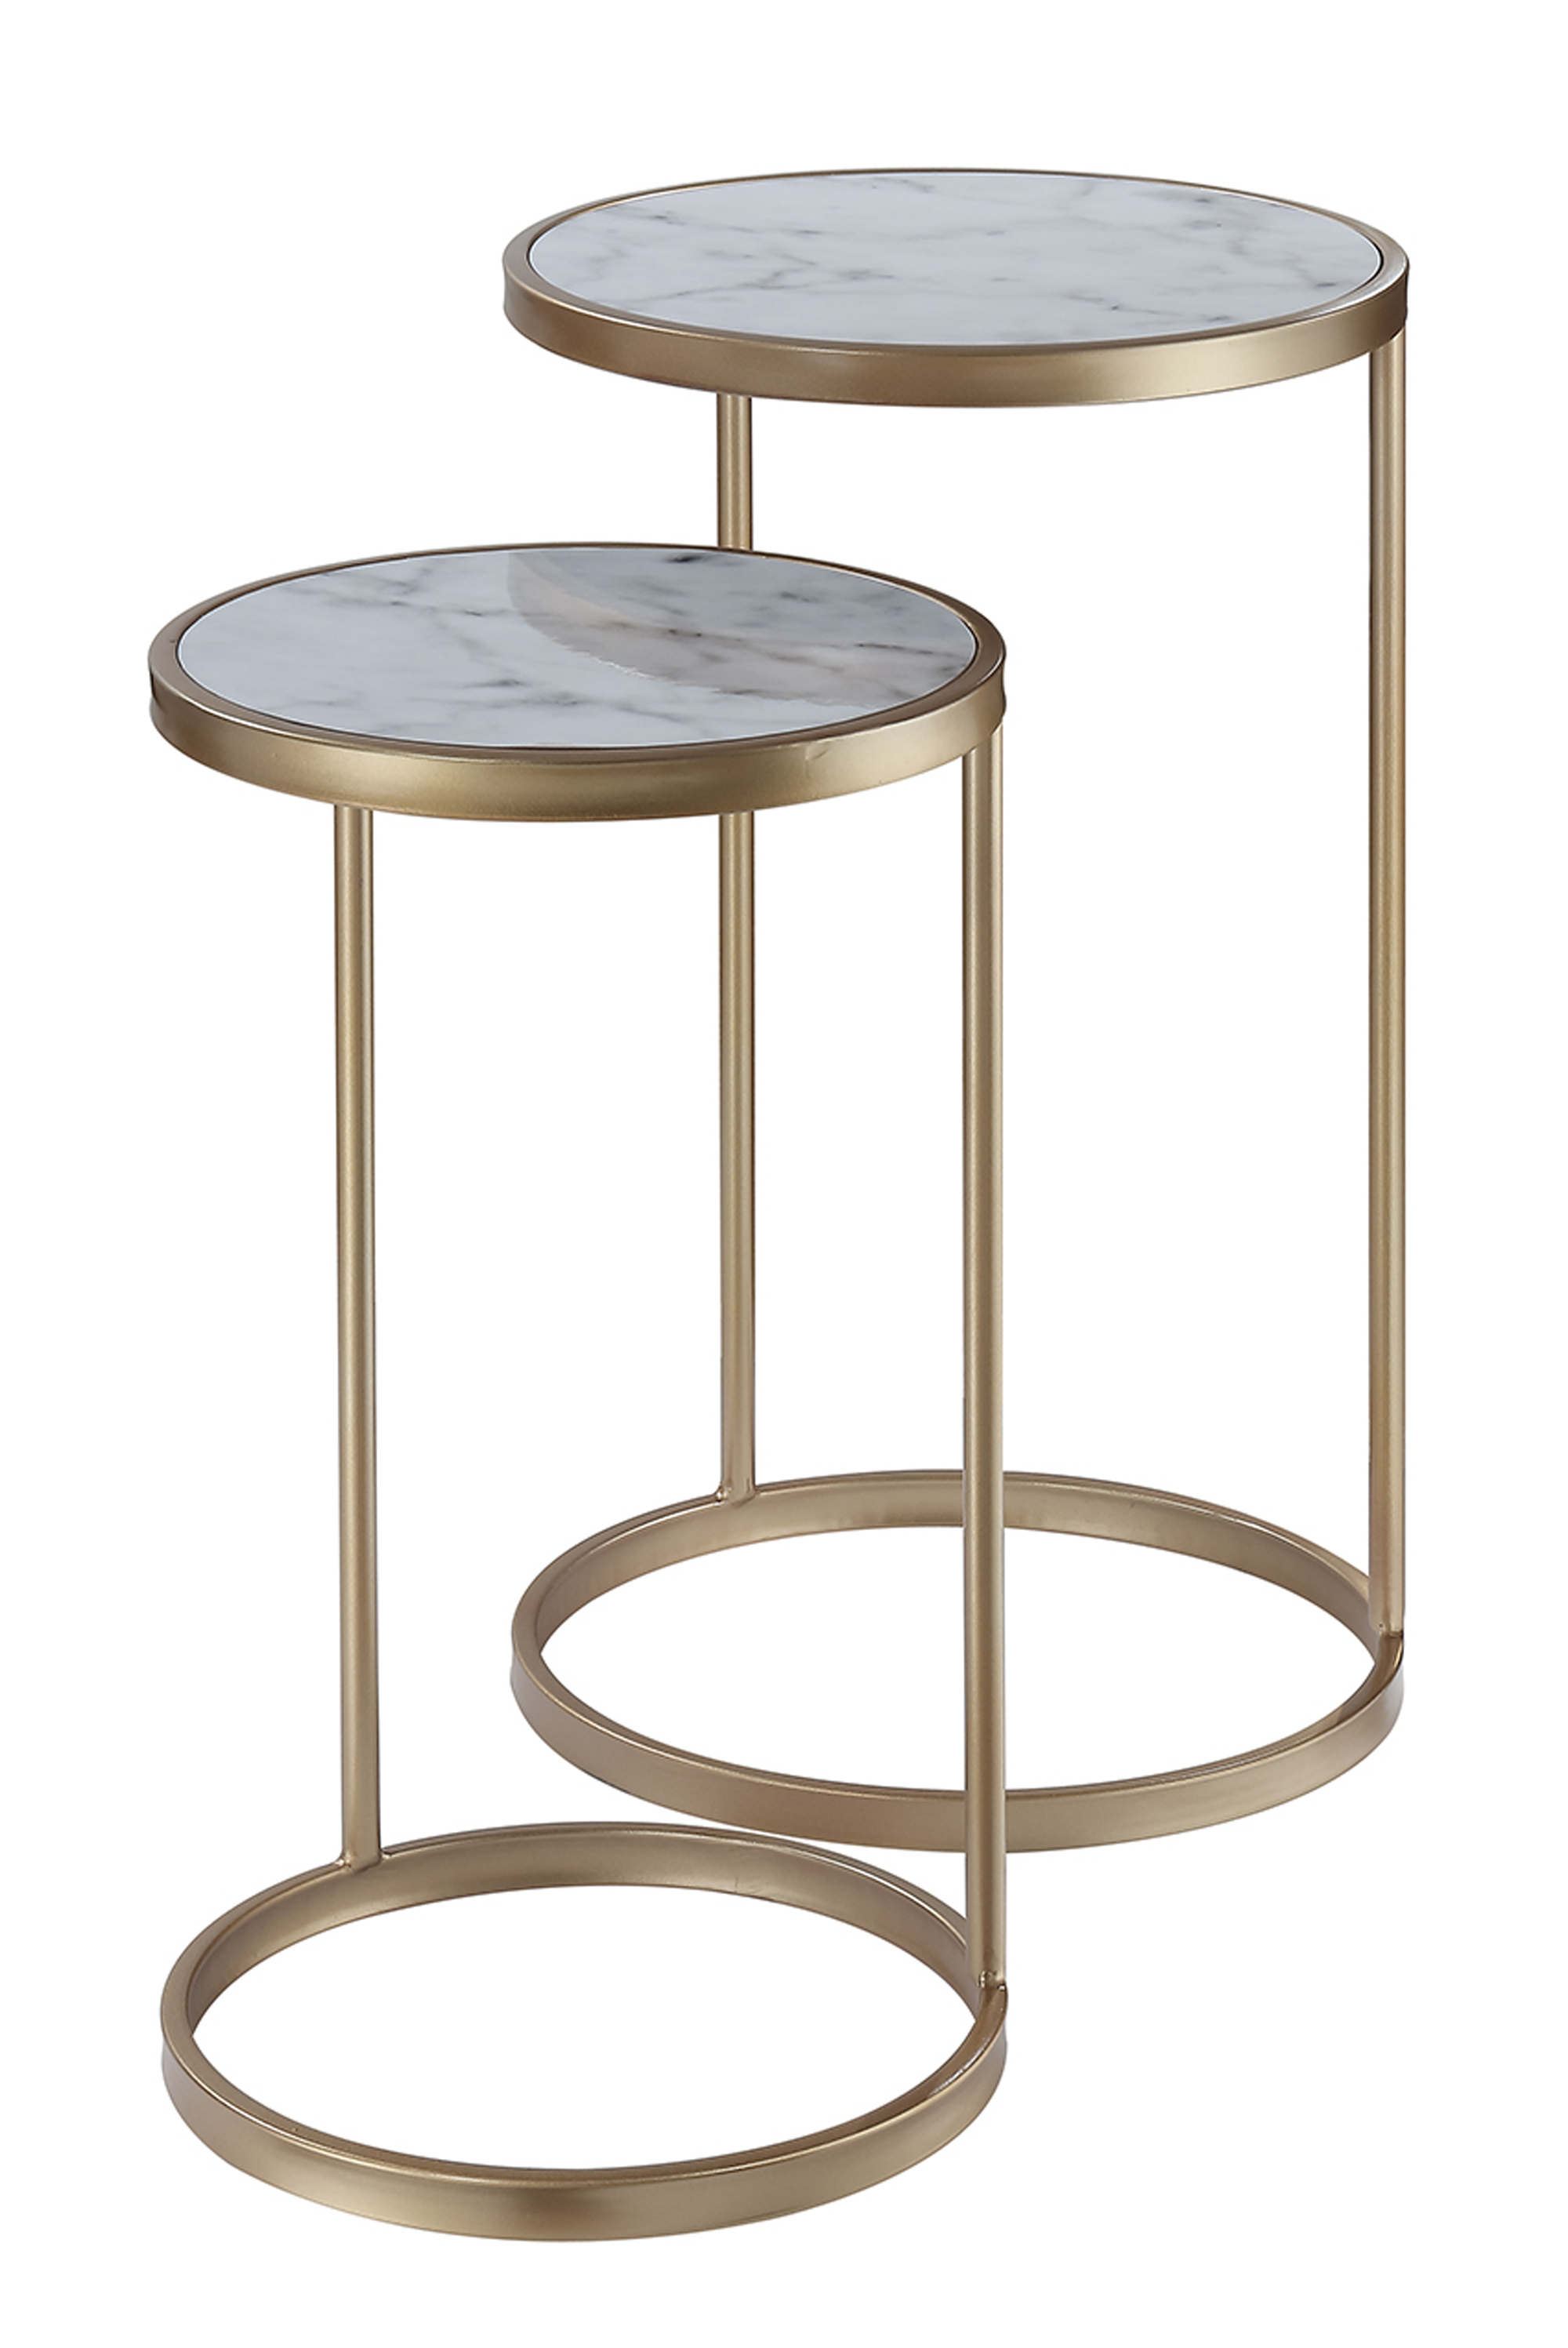 Convenience Concepts 413555M Gold Coast Faux Marble Nesting End Tables Faux Marble & Gold - 25 x 15.5 x 15.5 in.